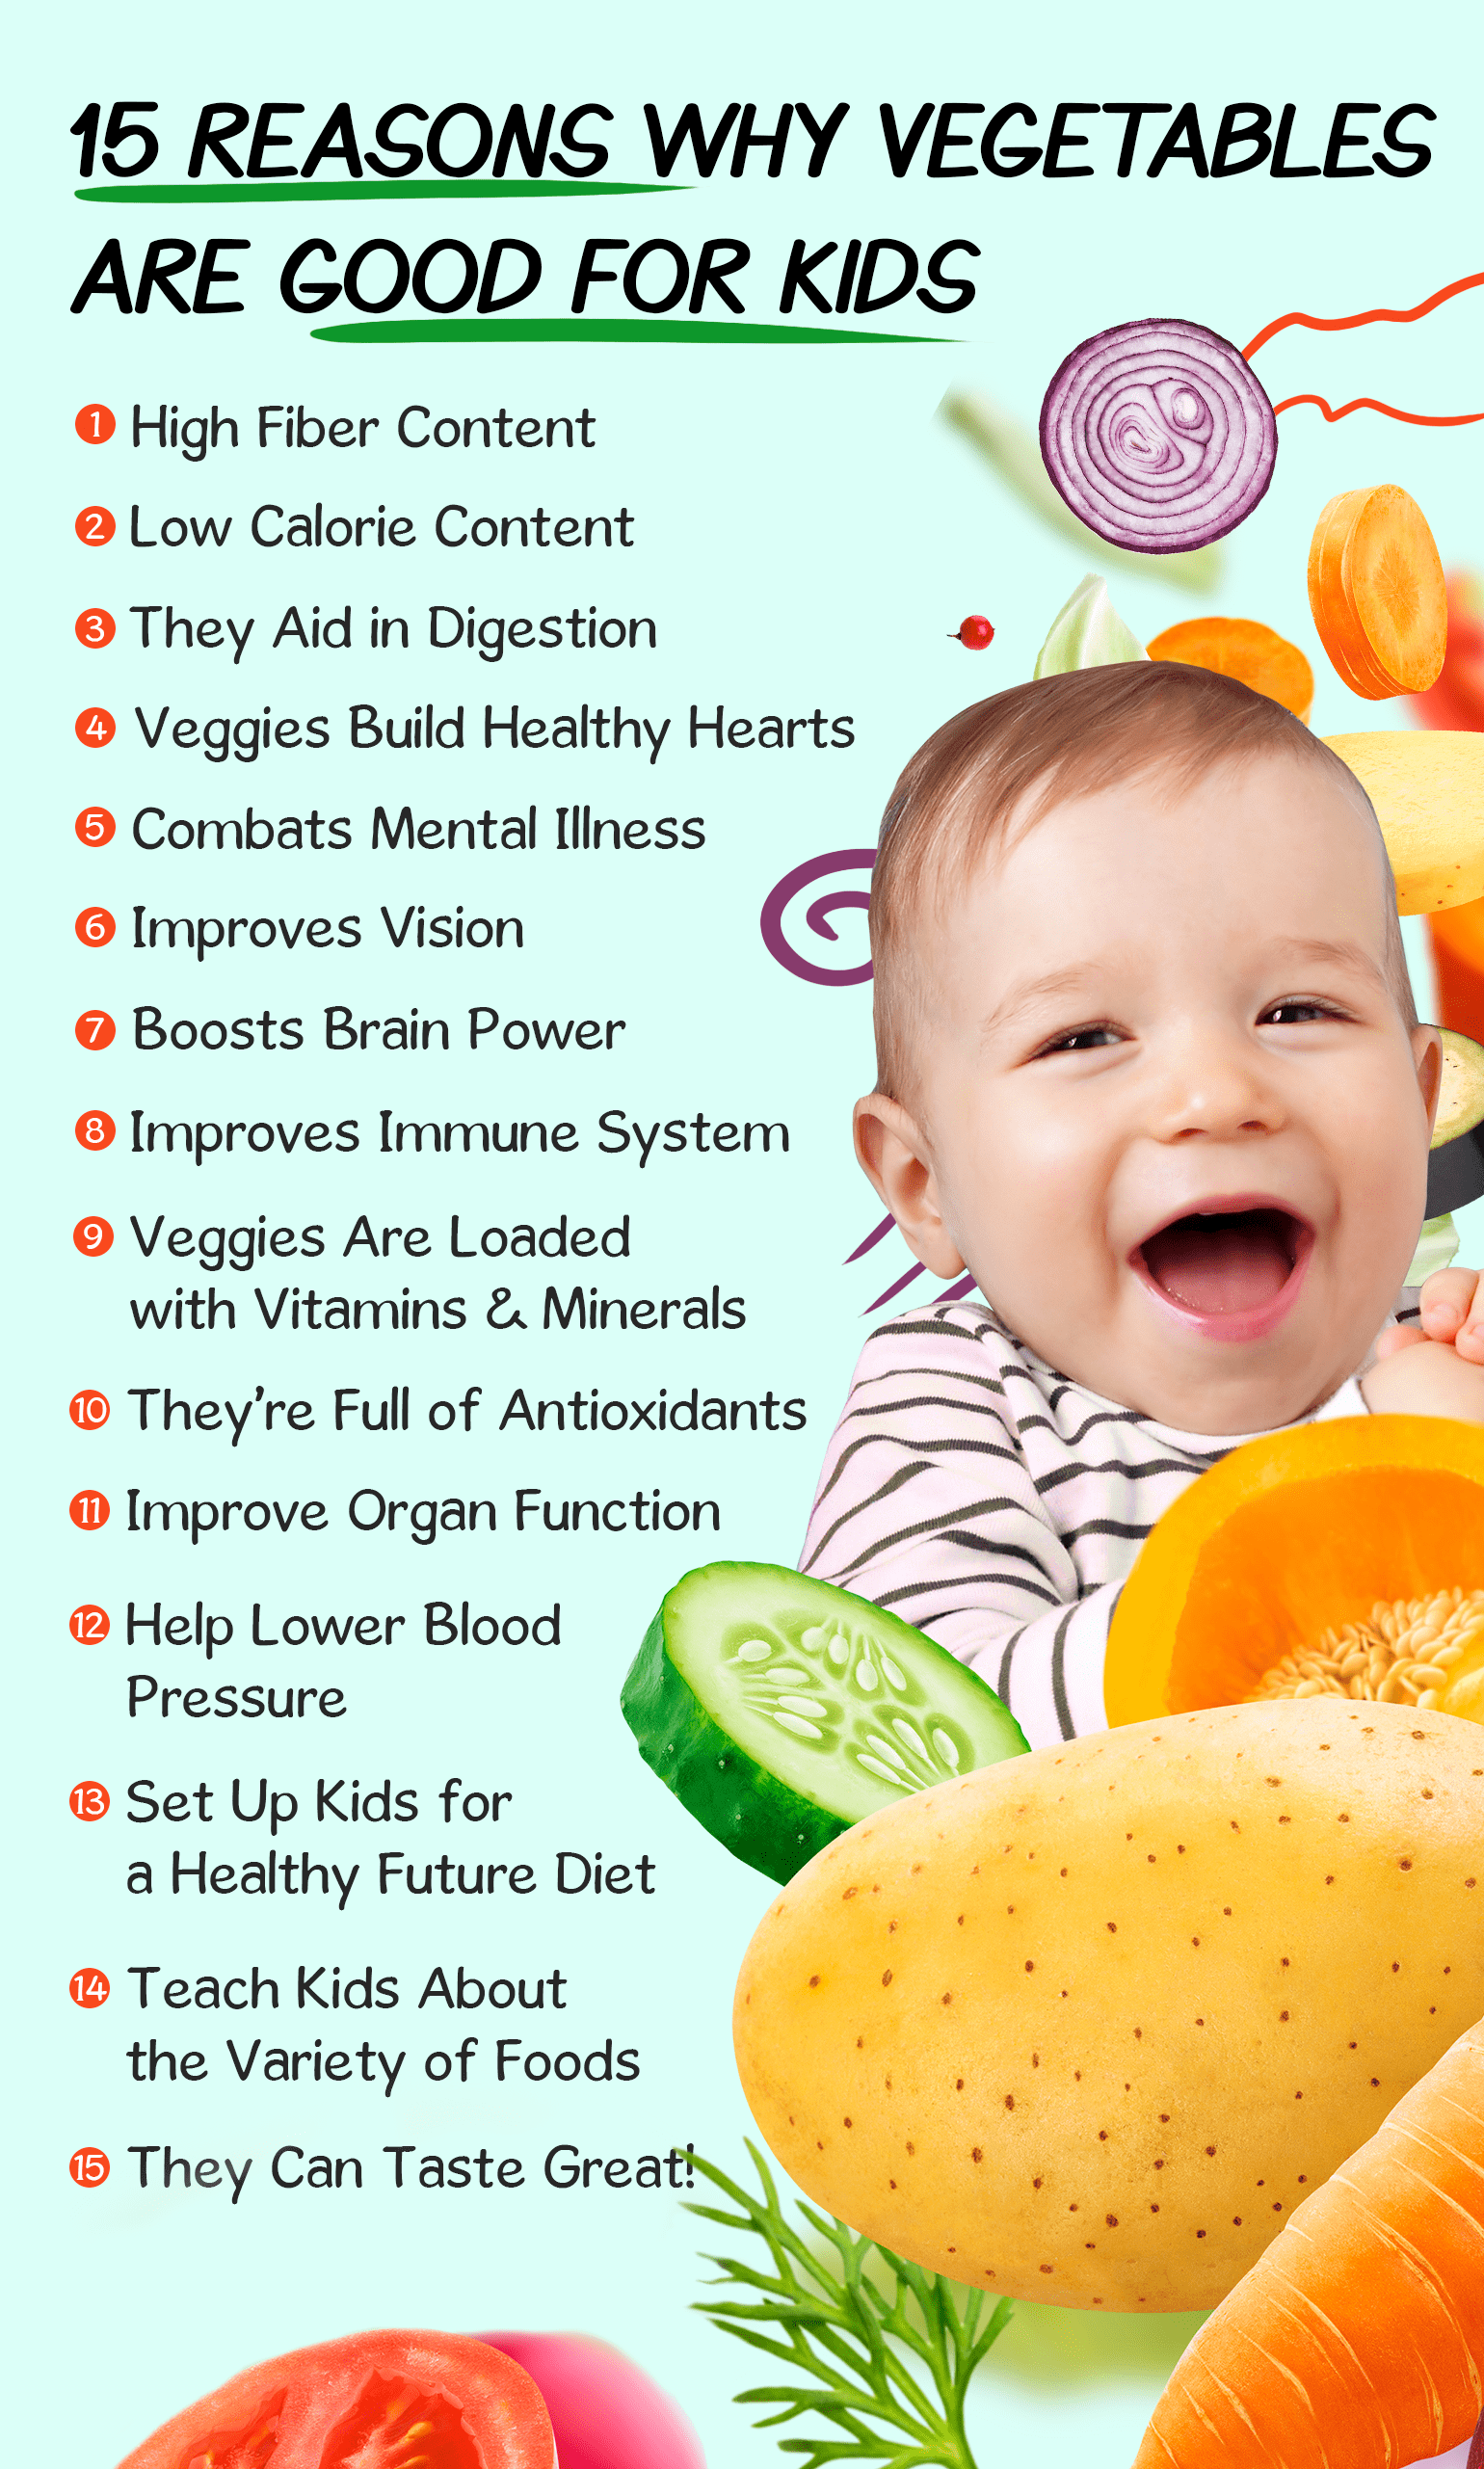 15 reasons why vegetables are good for kids